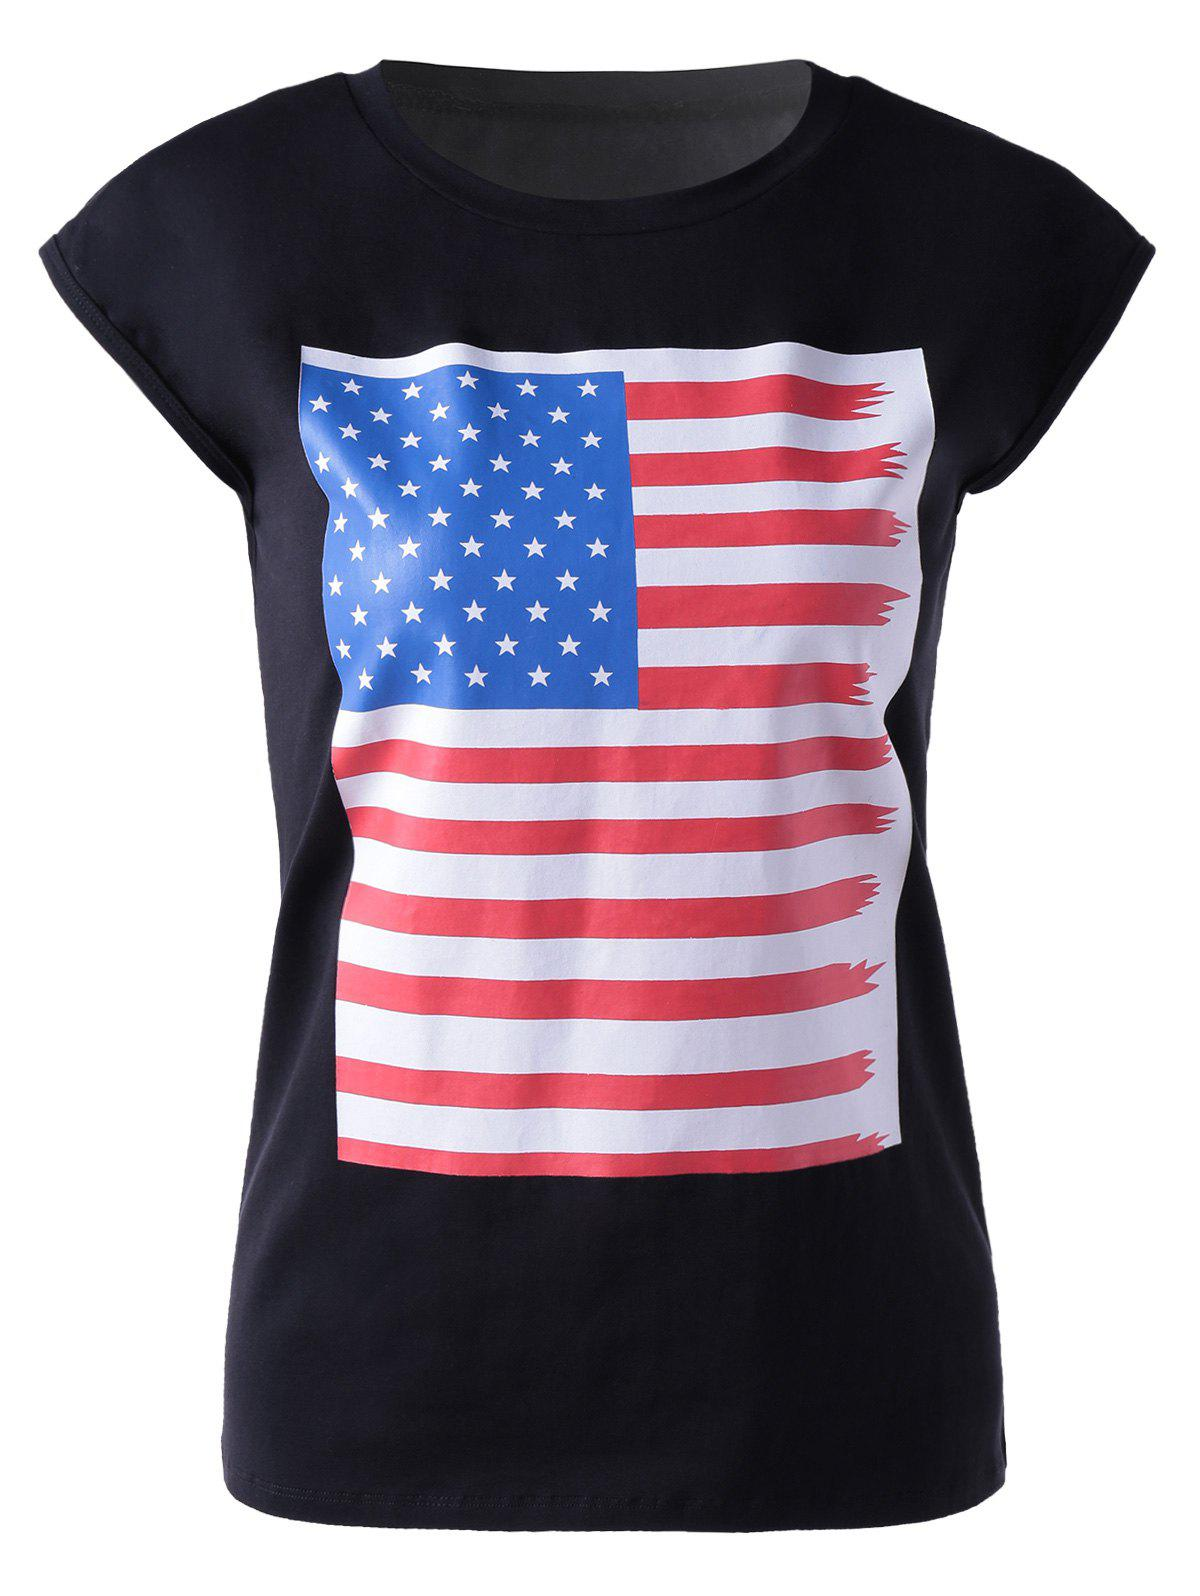 Casual Women's Round Neck Colorful Print Sleeveless T-Shirt For Women